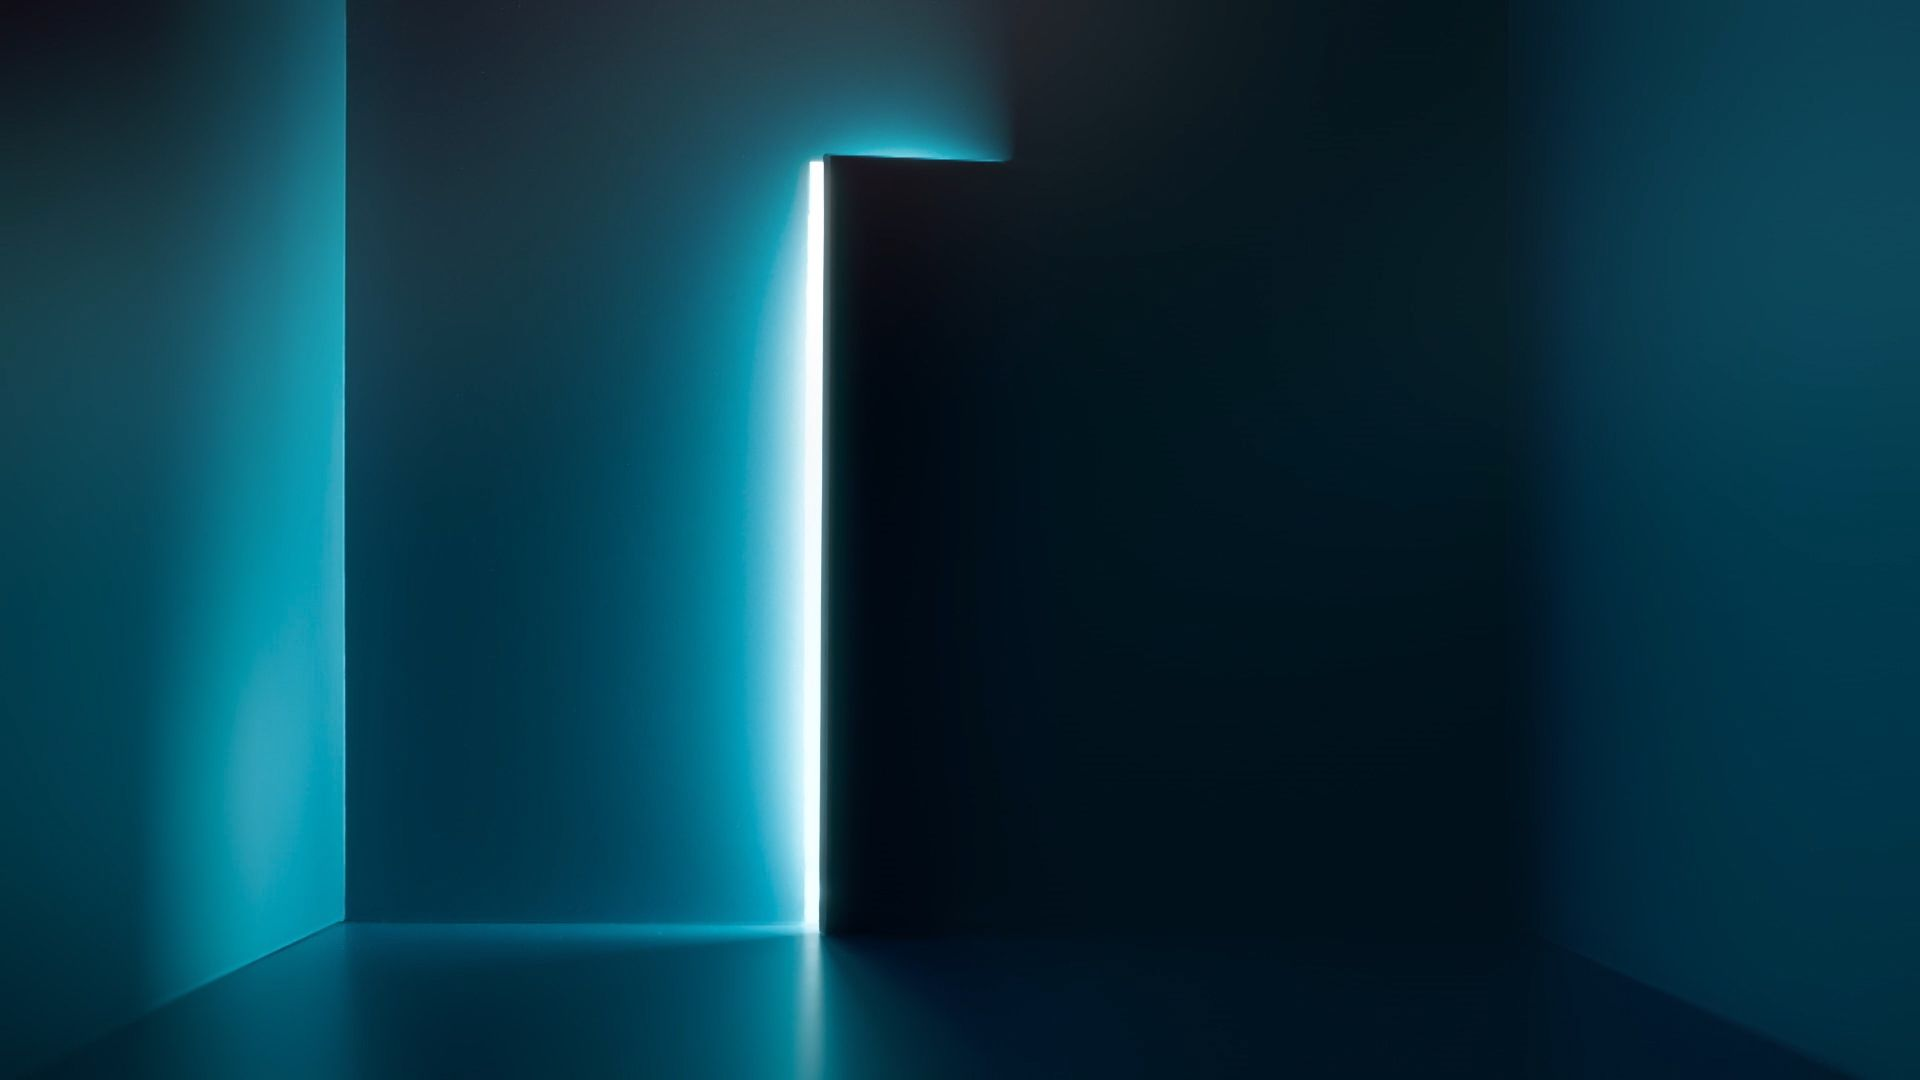 door opening letting light in by Mathieu Levesque for Give A Shit by Colorectal Cancer Canada